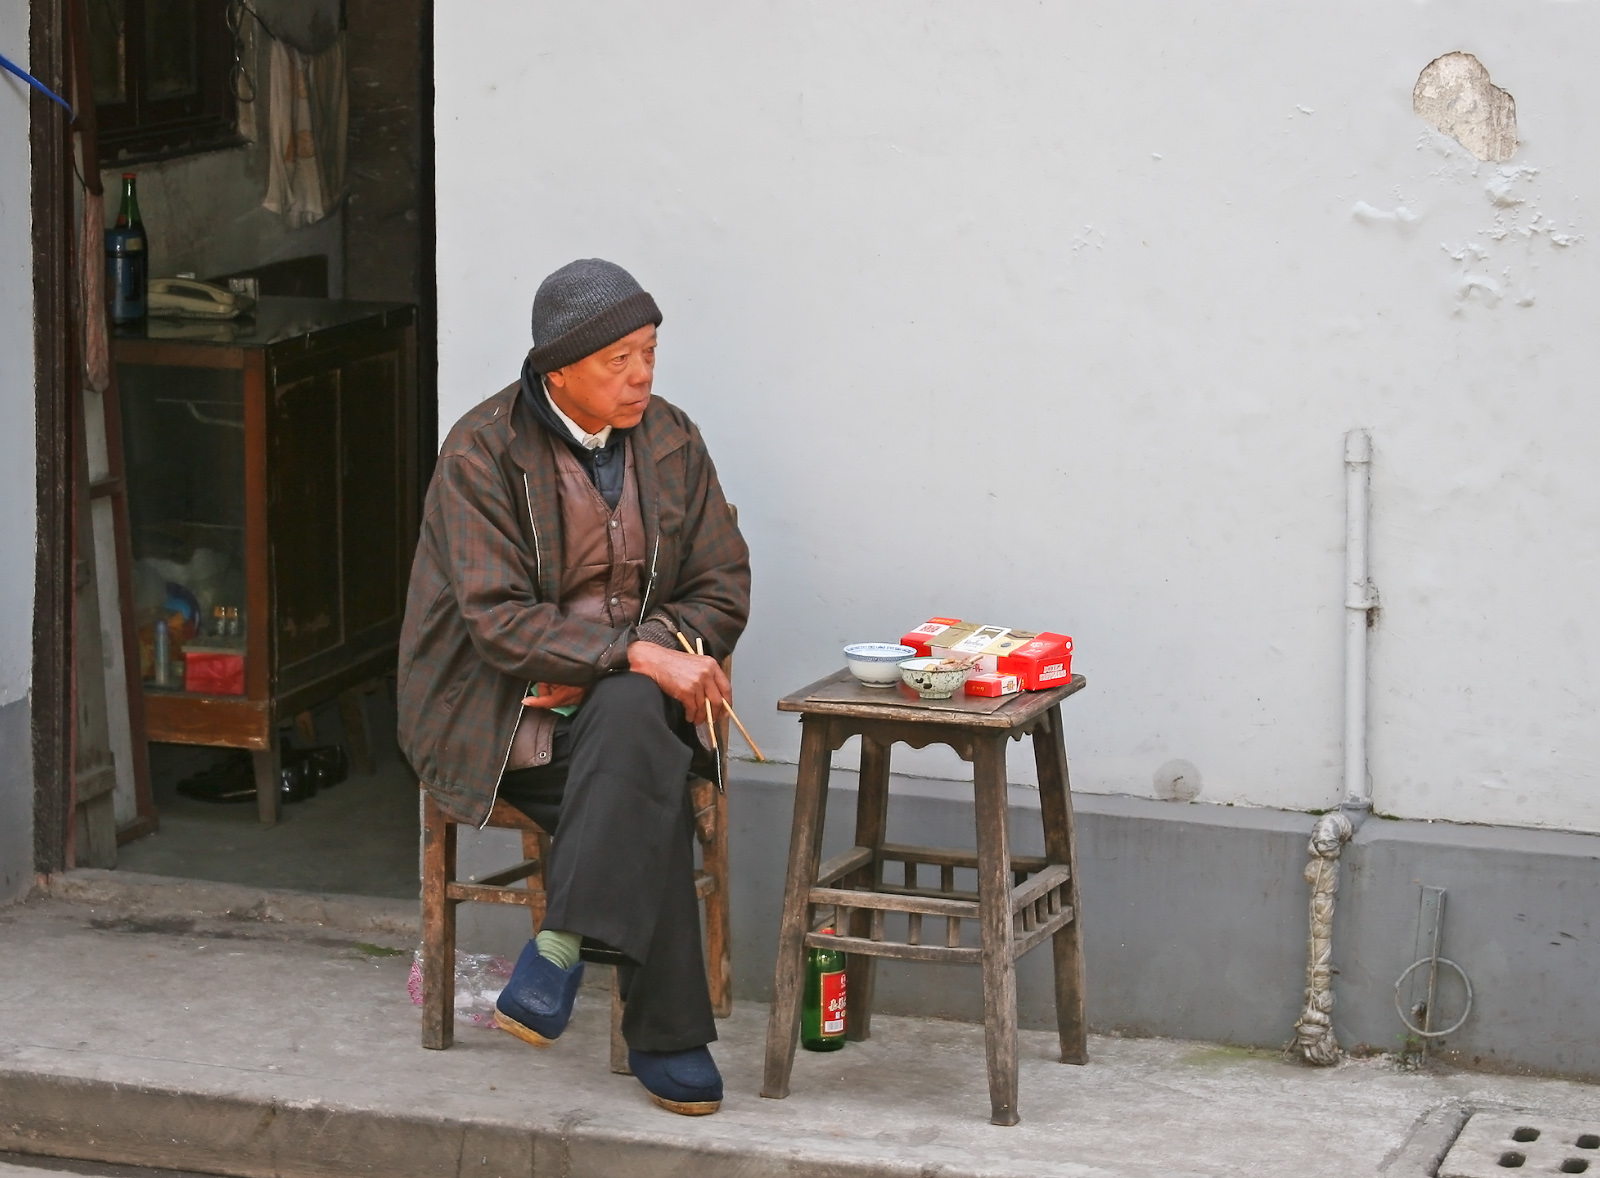 Lunch Break-Old Hutong District-Shanghai, China